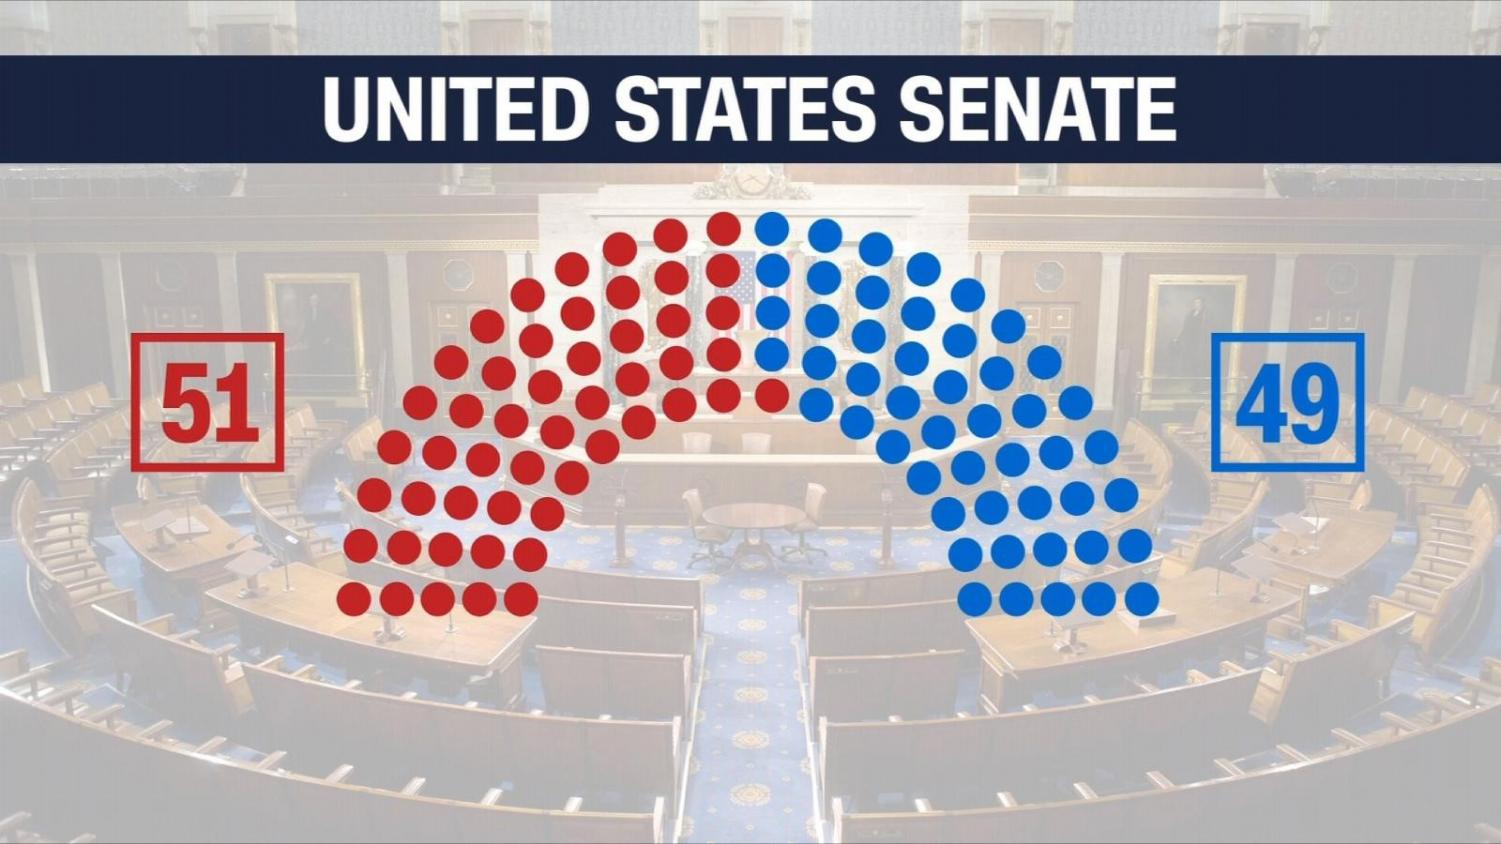 2018 Midterm results for the United States Senate. Photo courtesy of CNN.